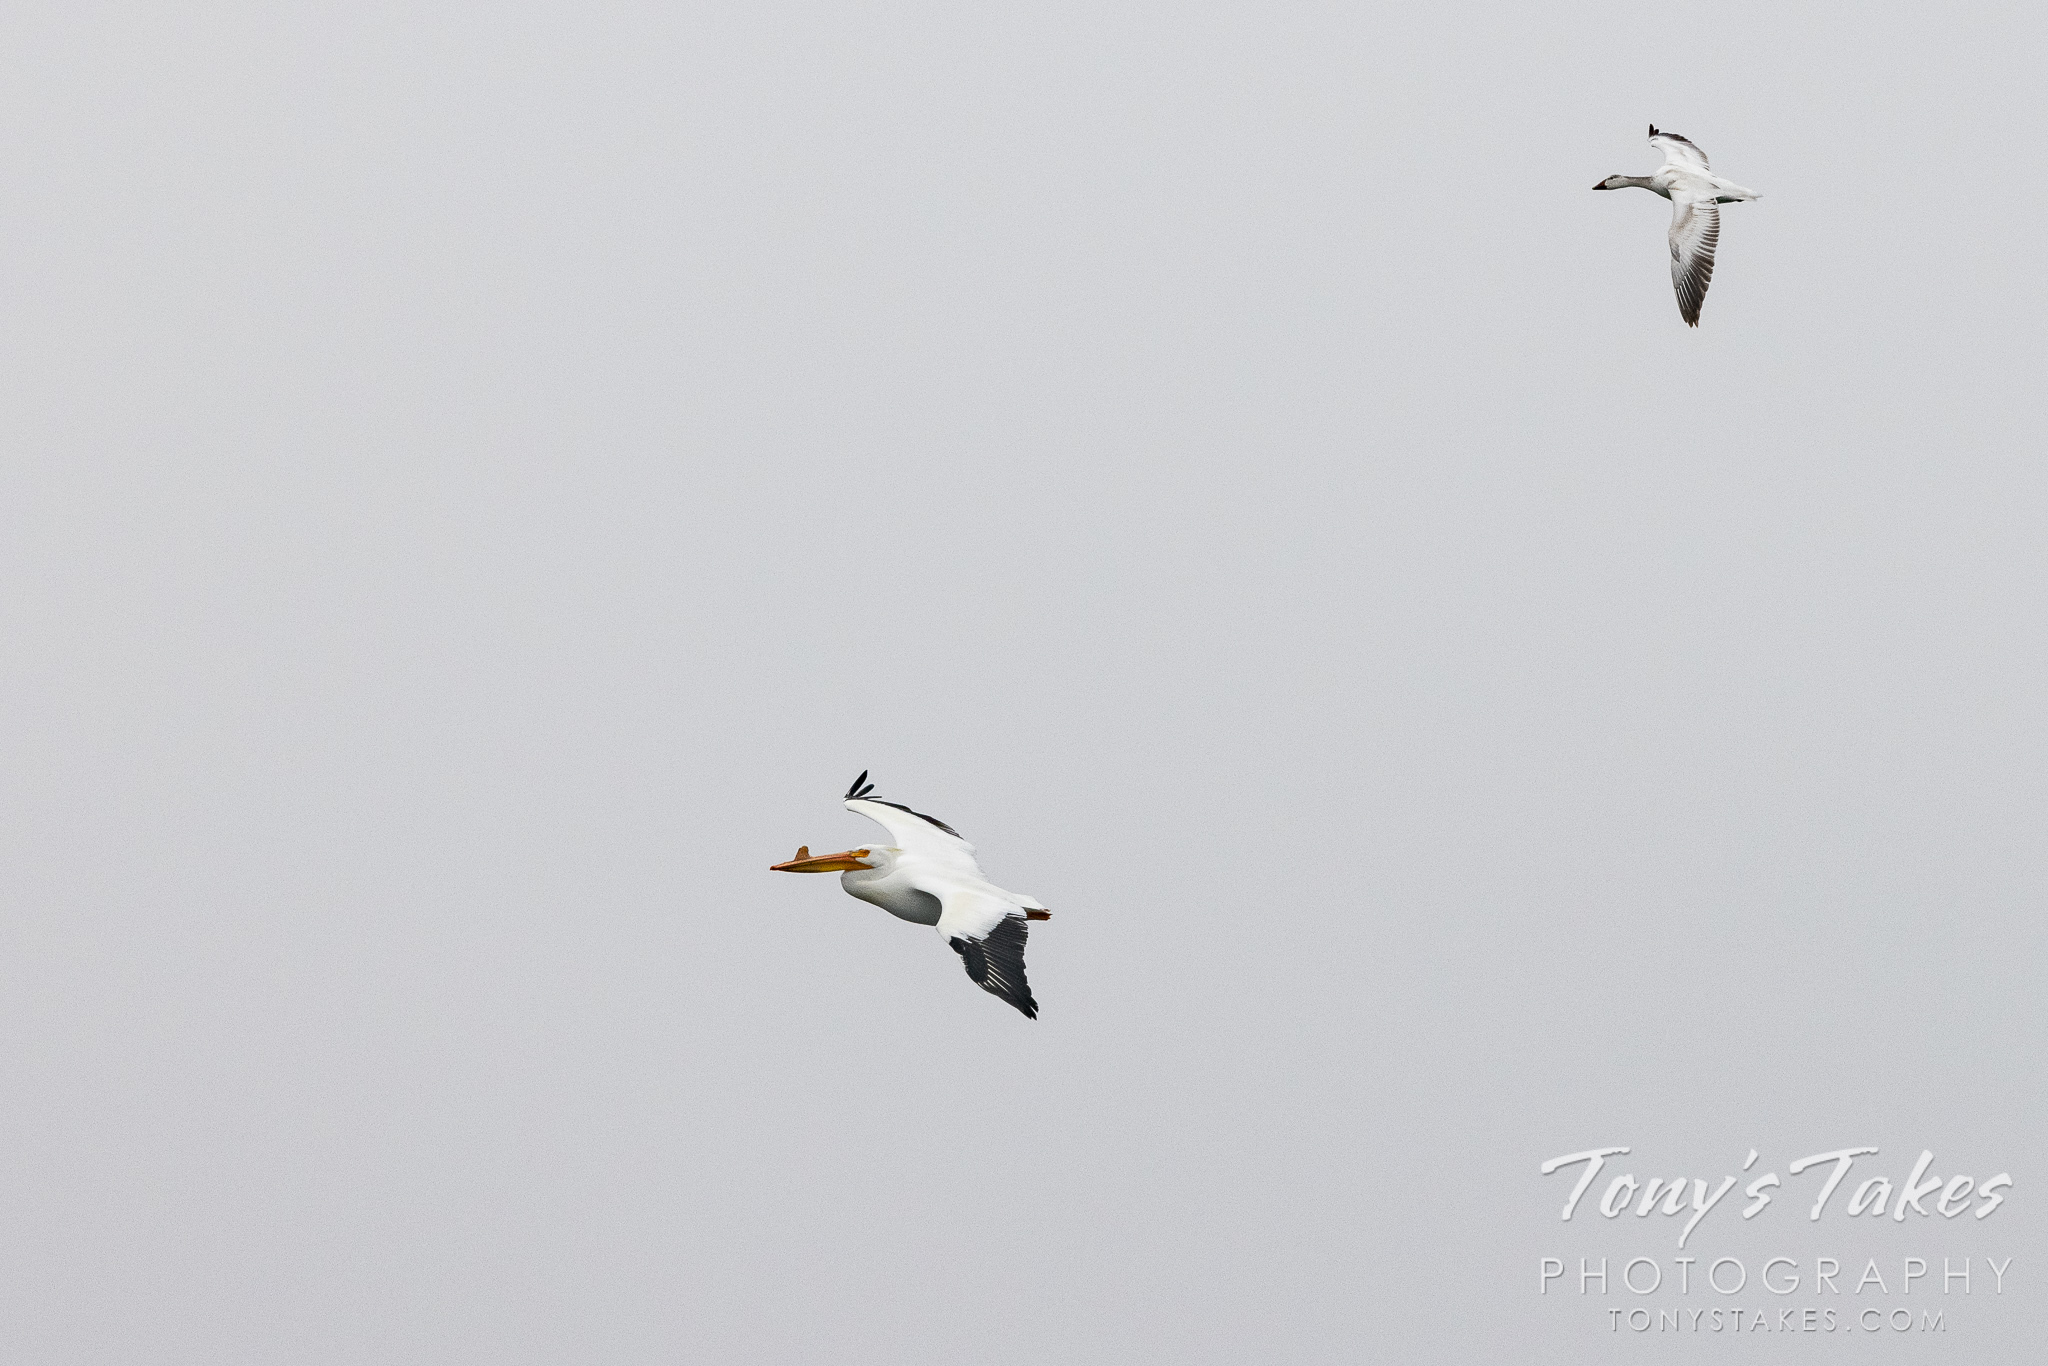 The odd couple – snow goose and pelican hang out